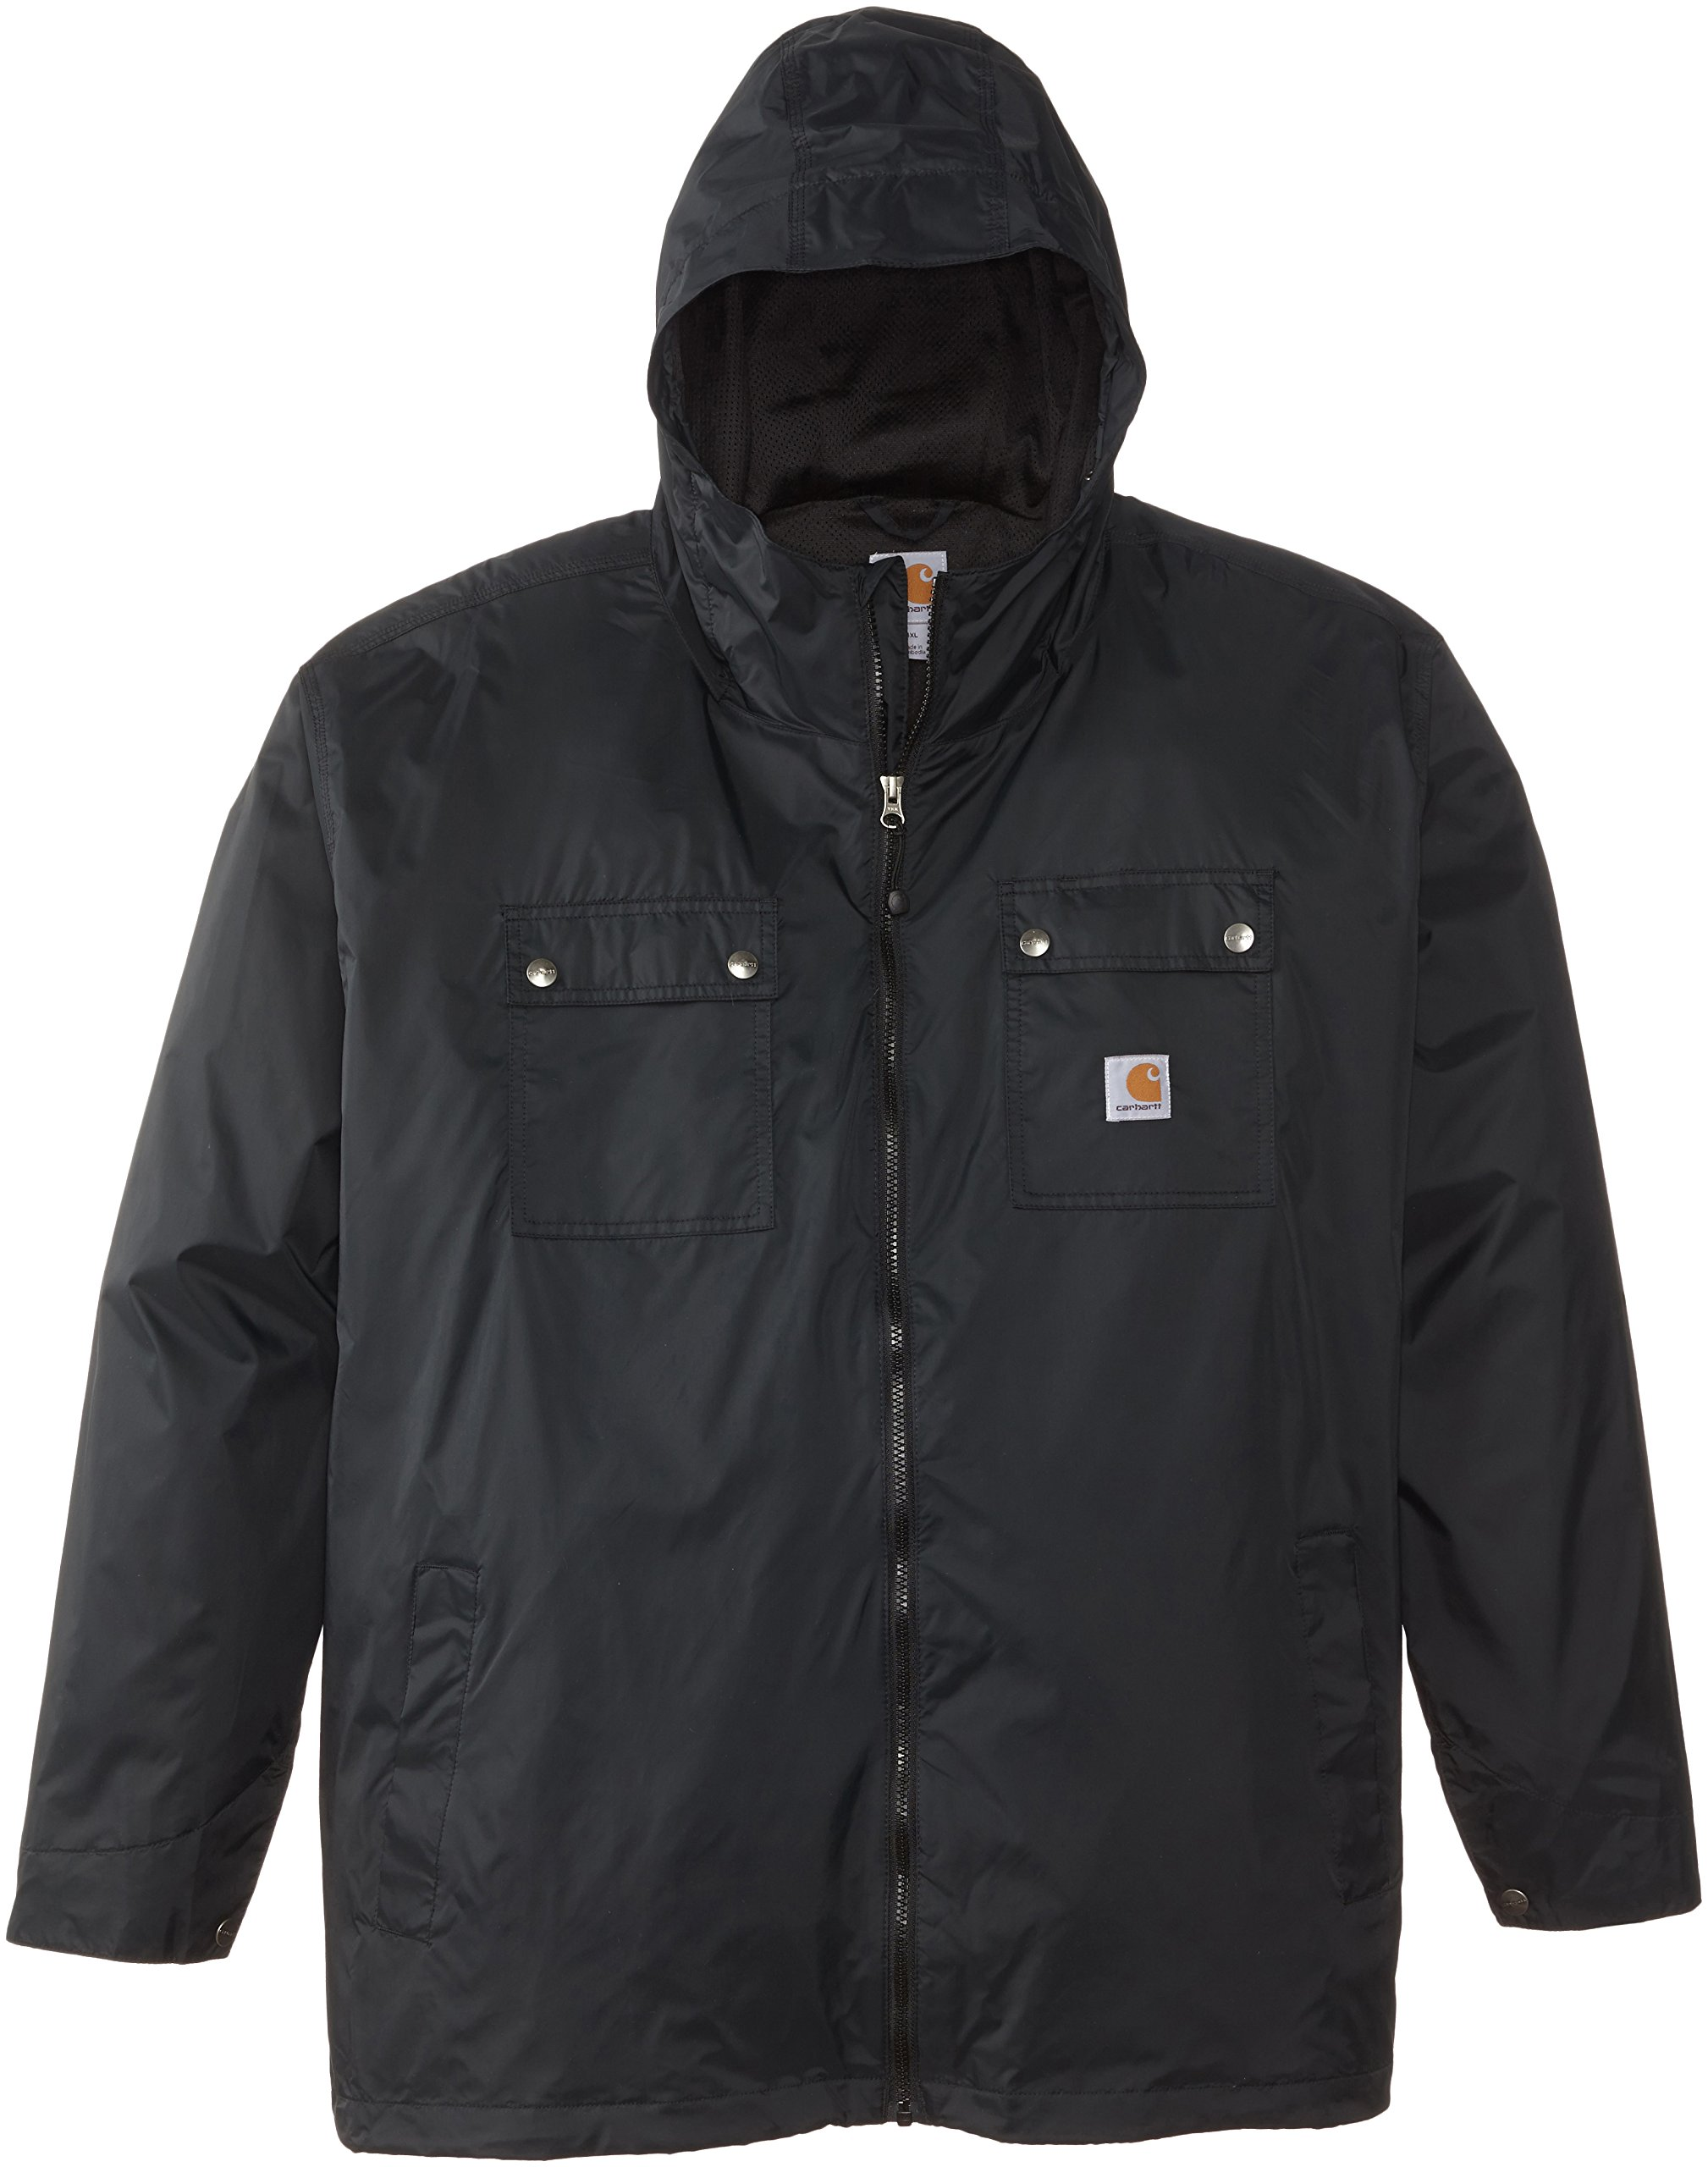 Carhartt Men's Big & Tall Rockford Rain Defender Jacket,Black,XXXX-Large by Carhartt